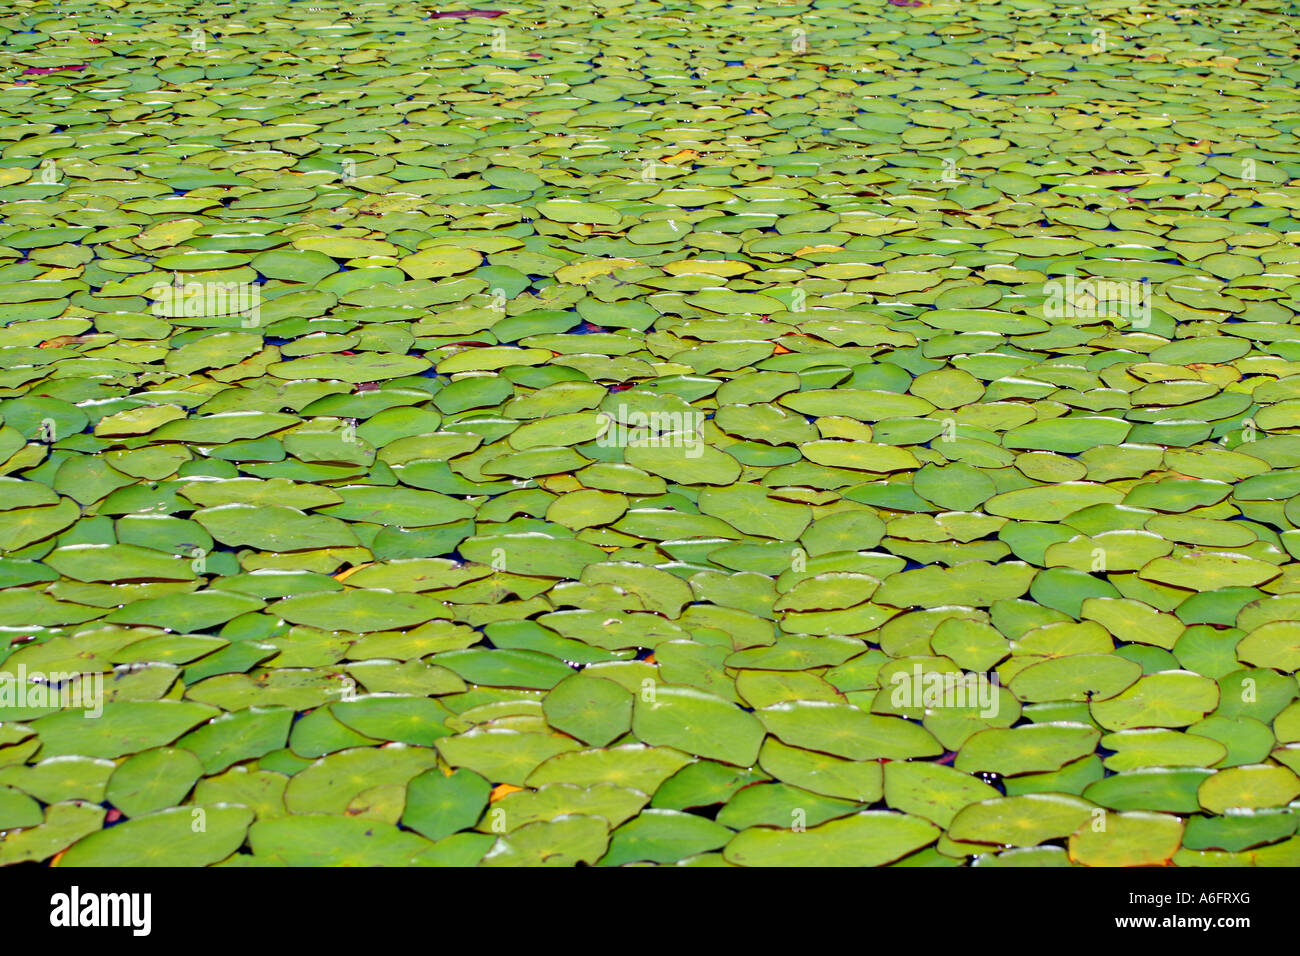 Massive water lily type aquatic plants Lake of the Woods Oregon - Stock Image